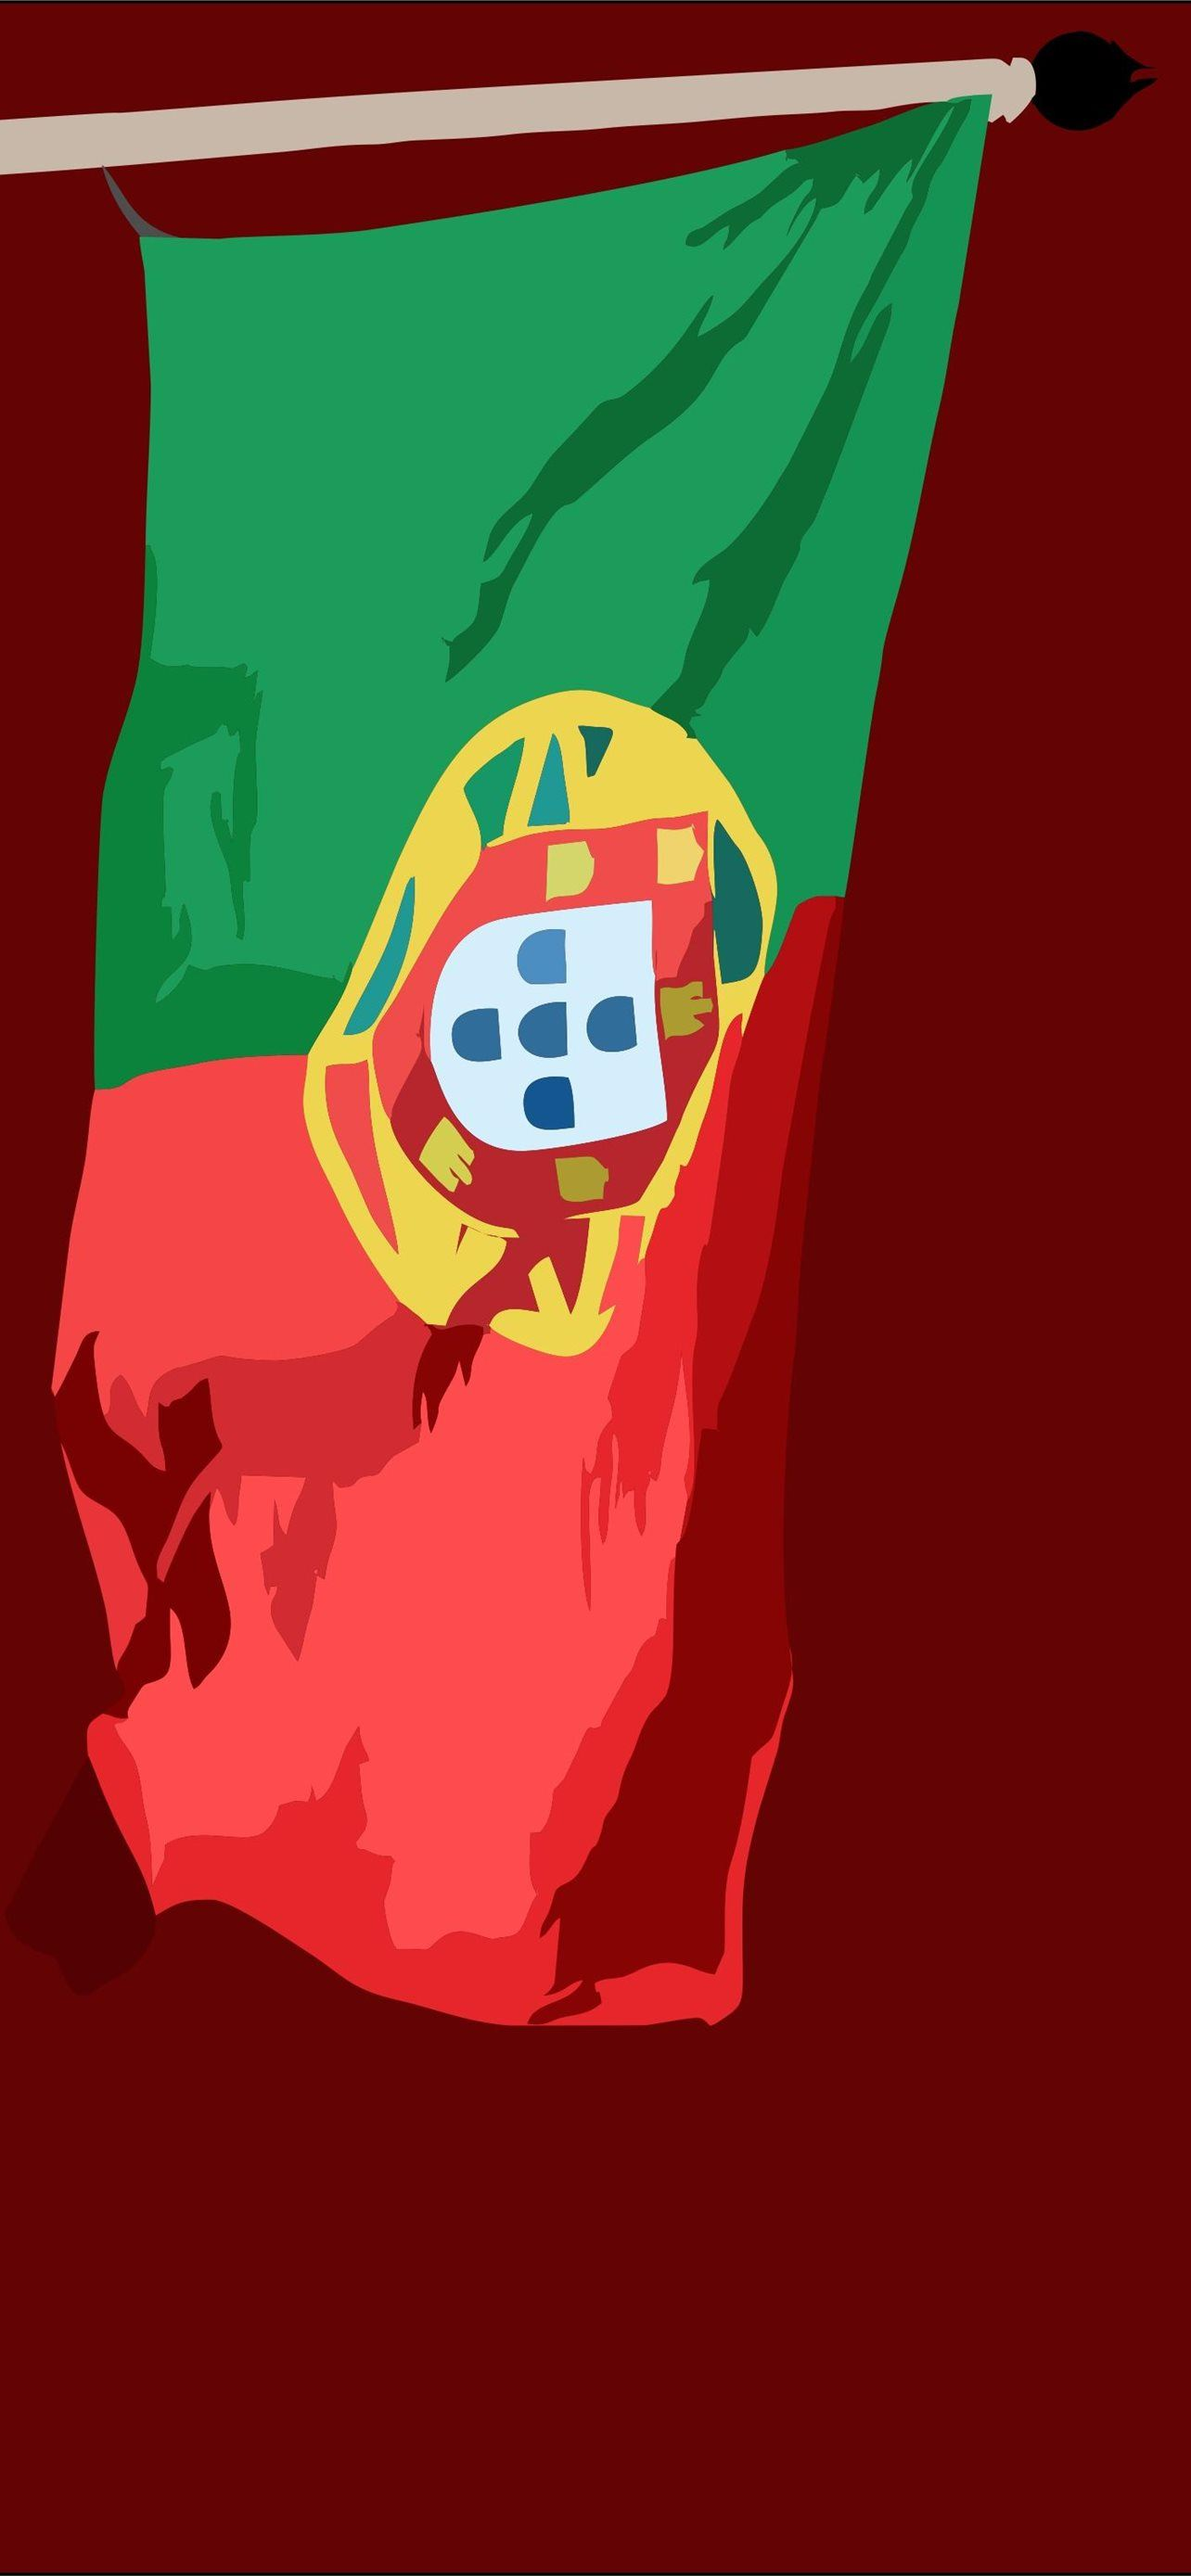 Portugal Flag Iphone Wallpapers Free Download